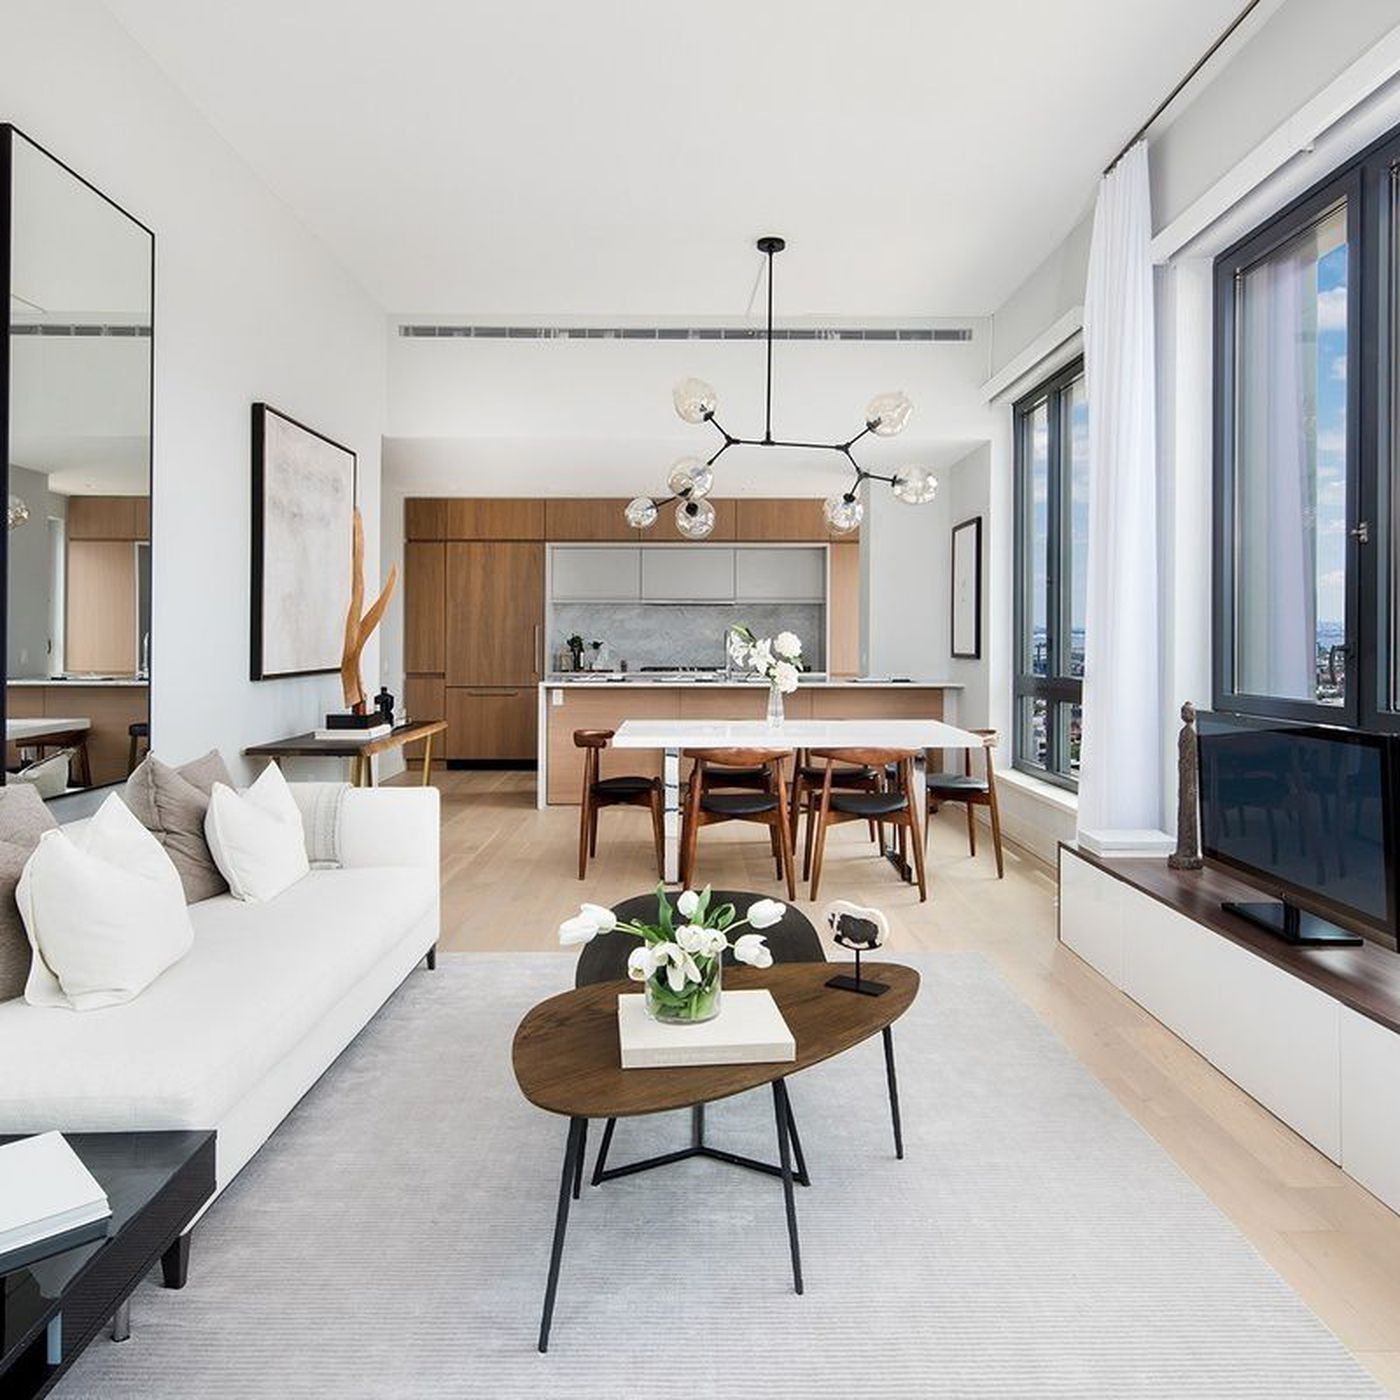 5 open houses in Prospect Heights to check out this weekend Curbed NY